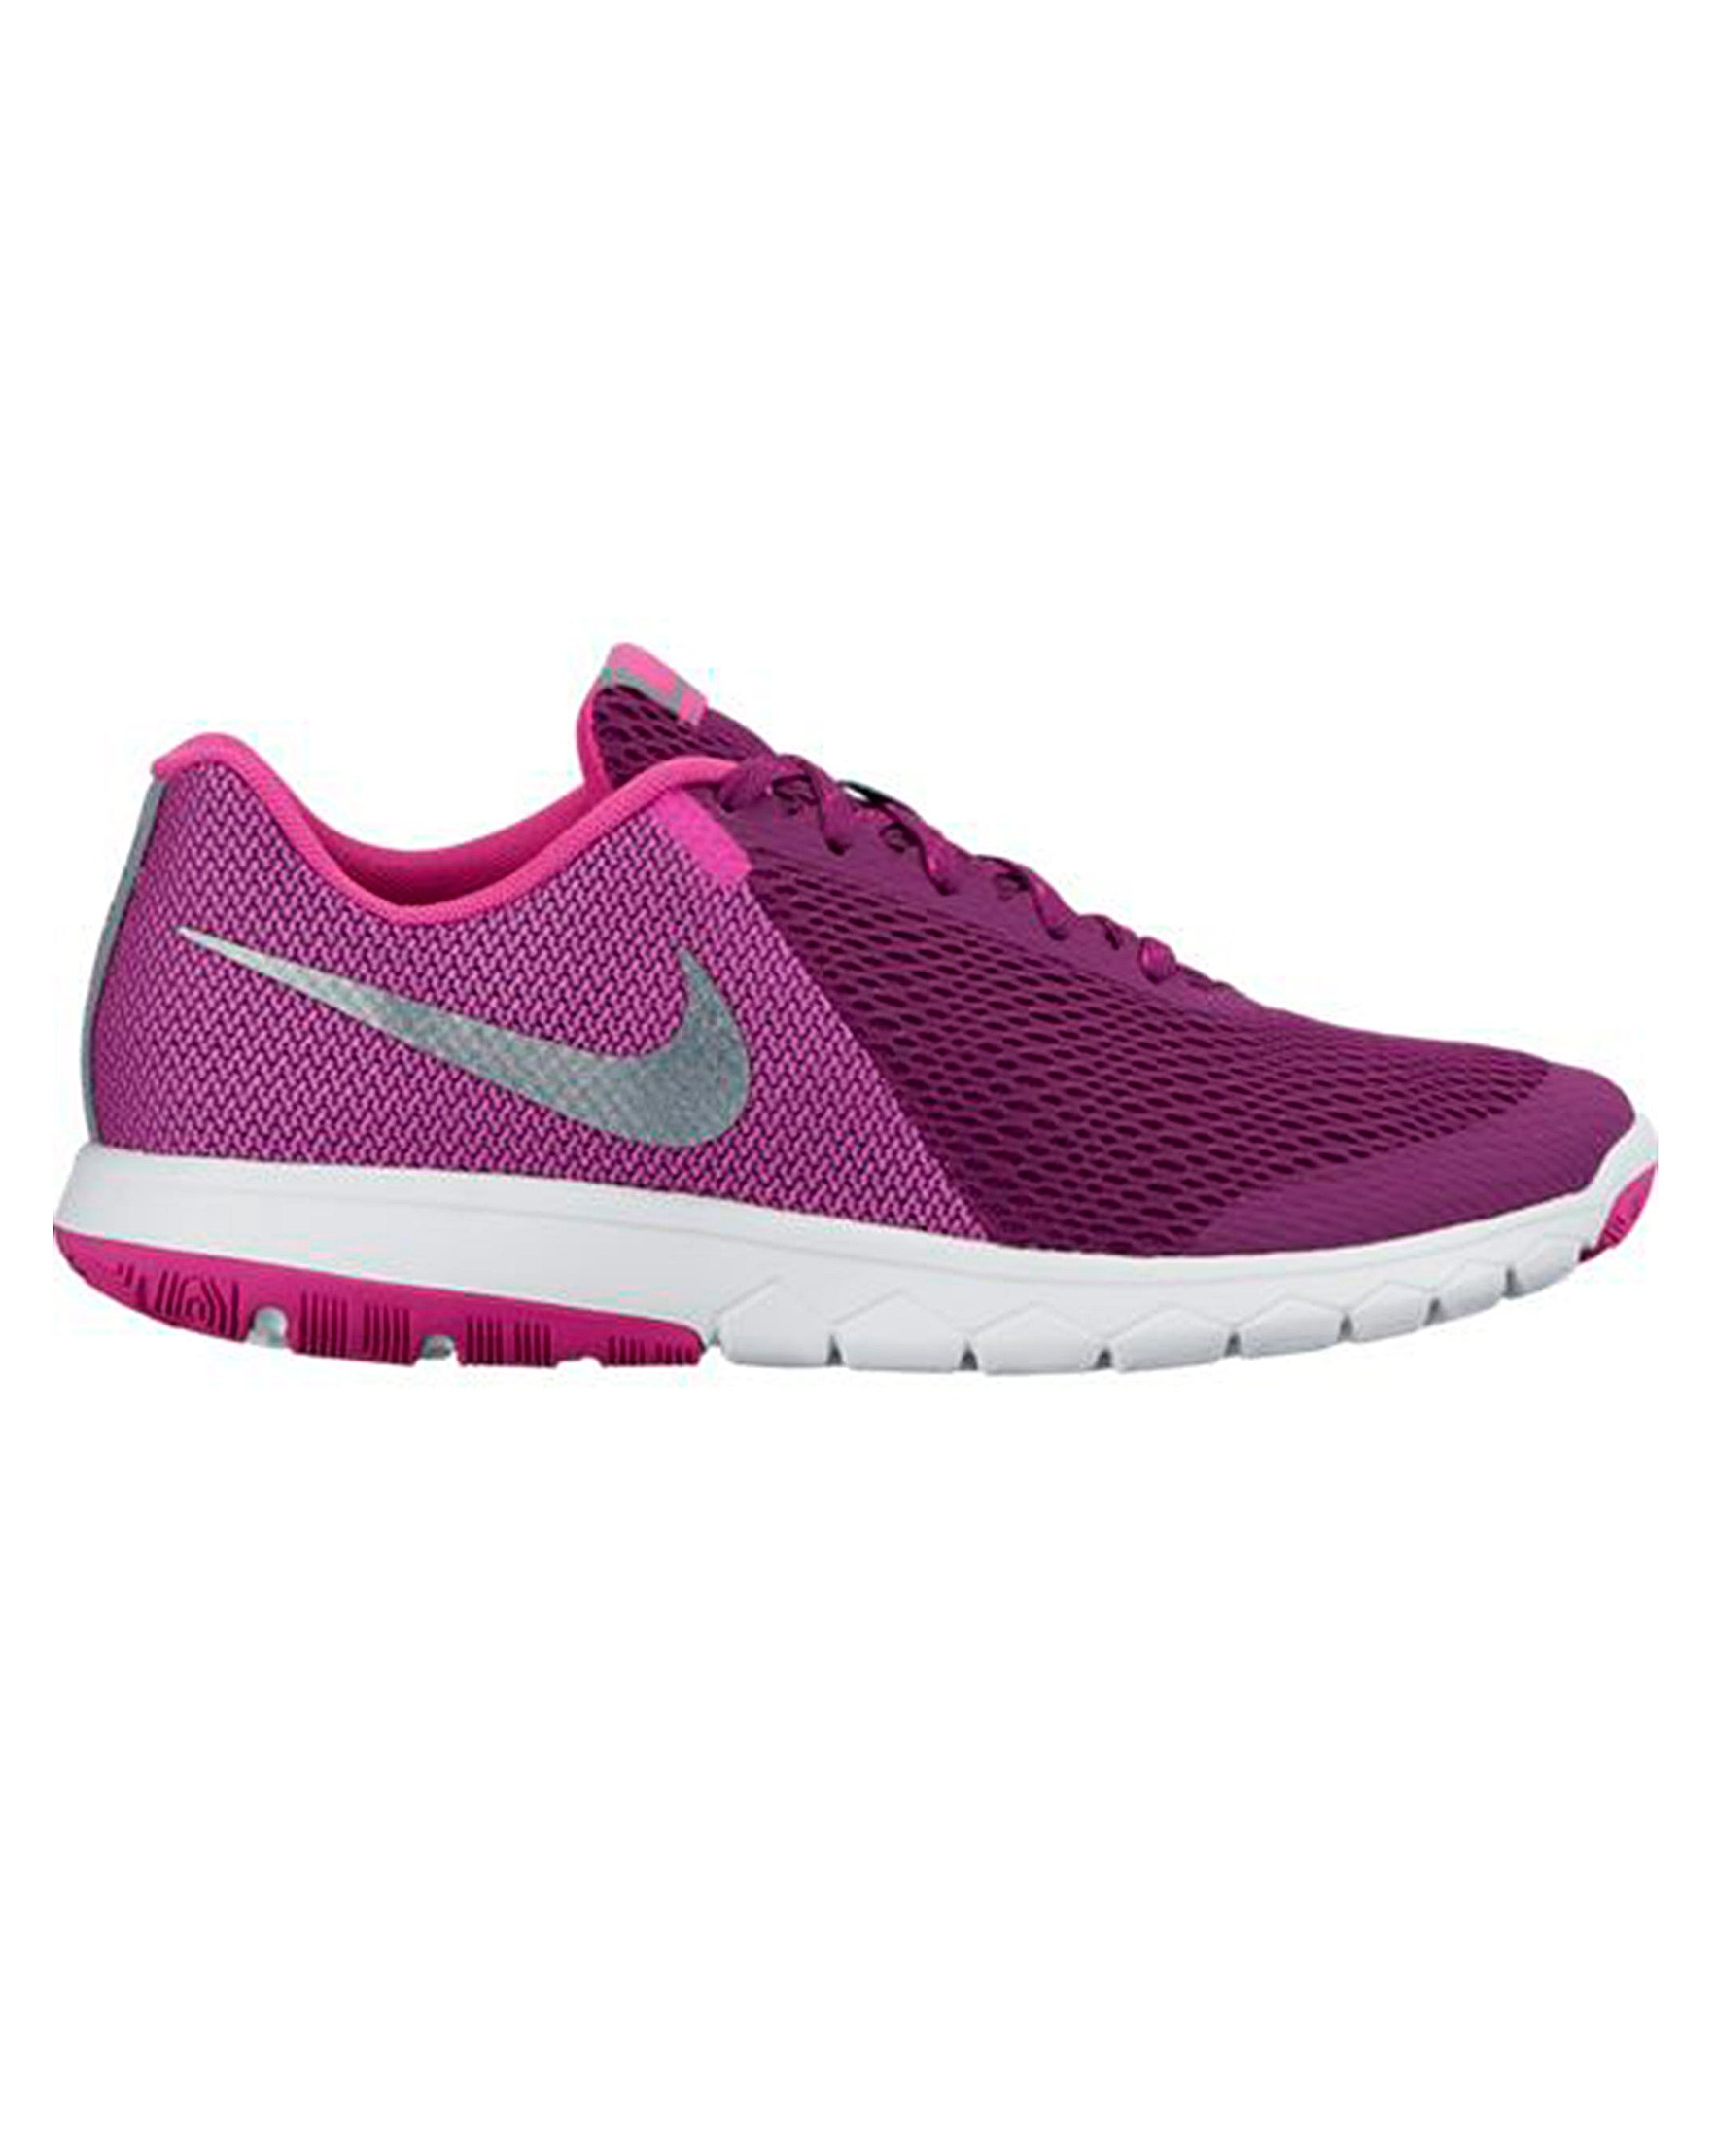 c6be308788c54 Nike Flex Experience 5 Trainers